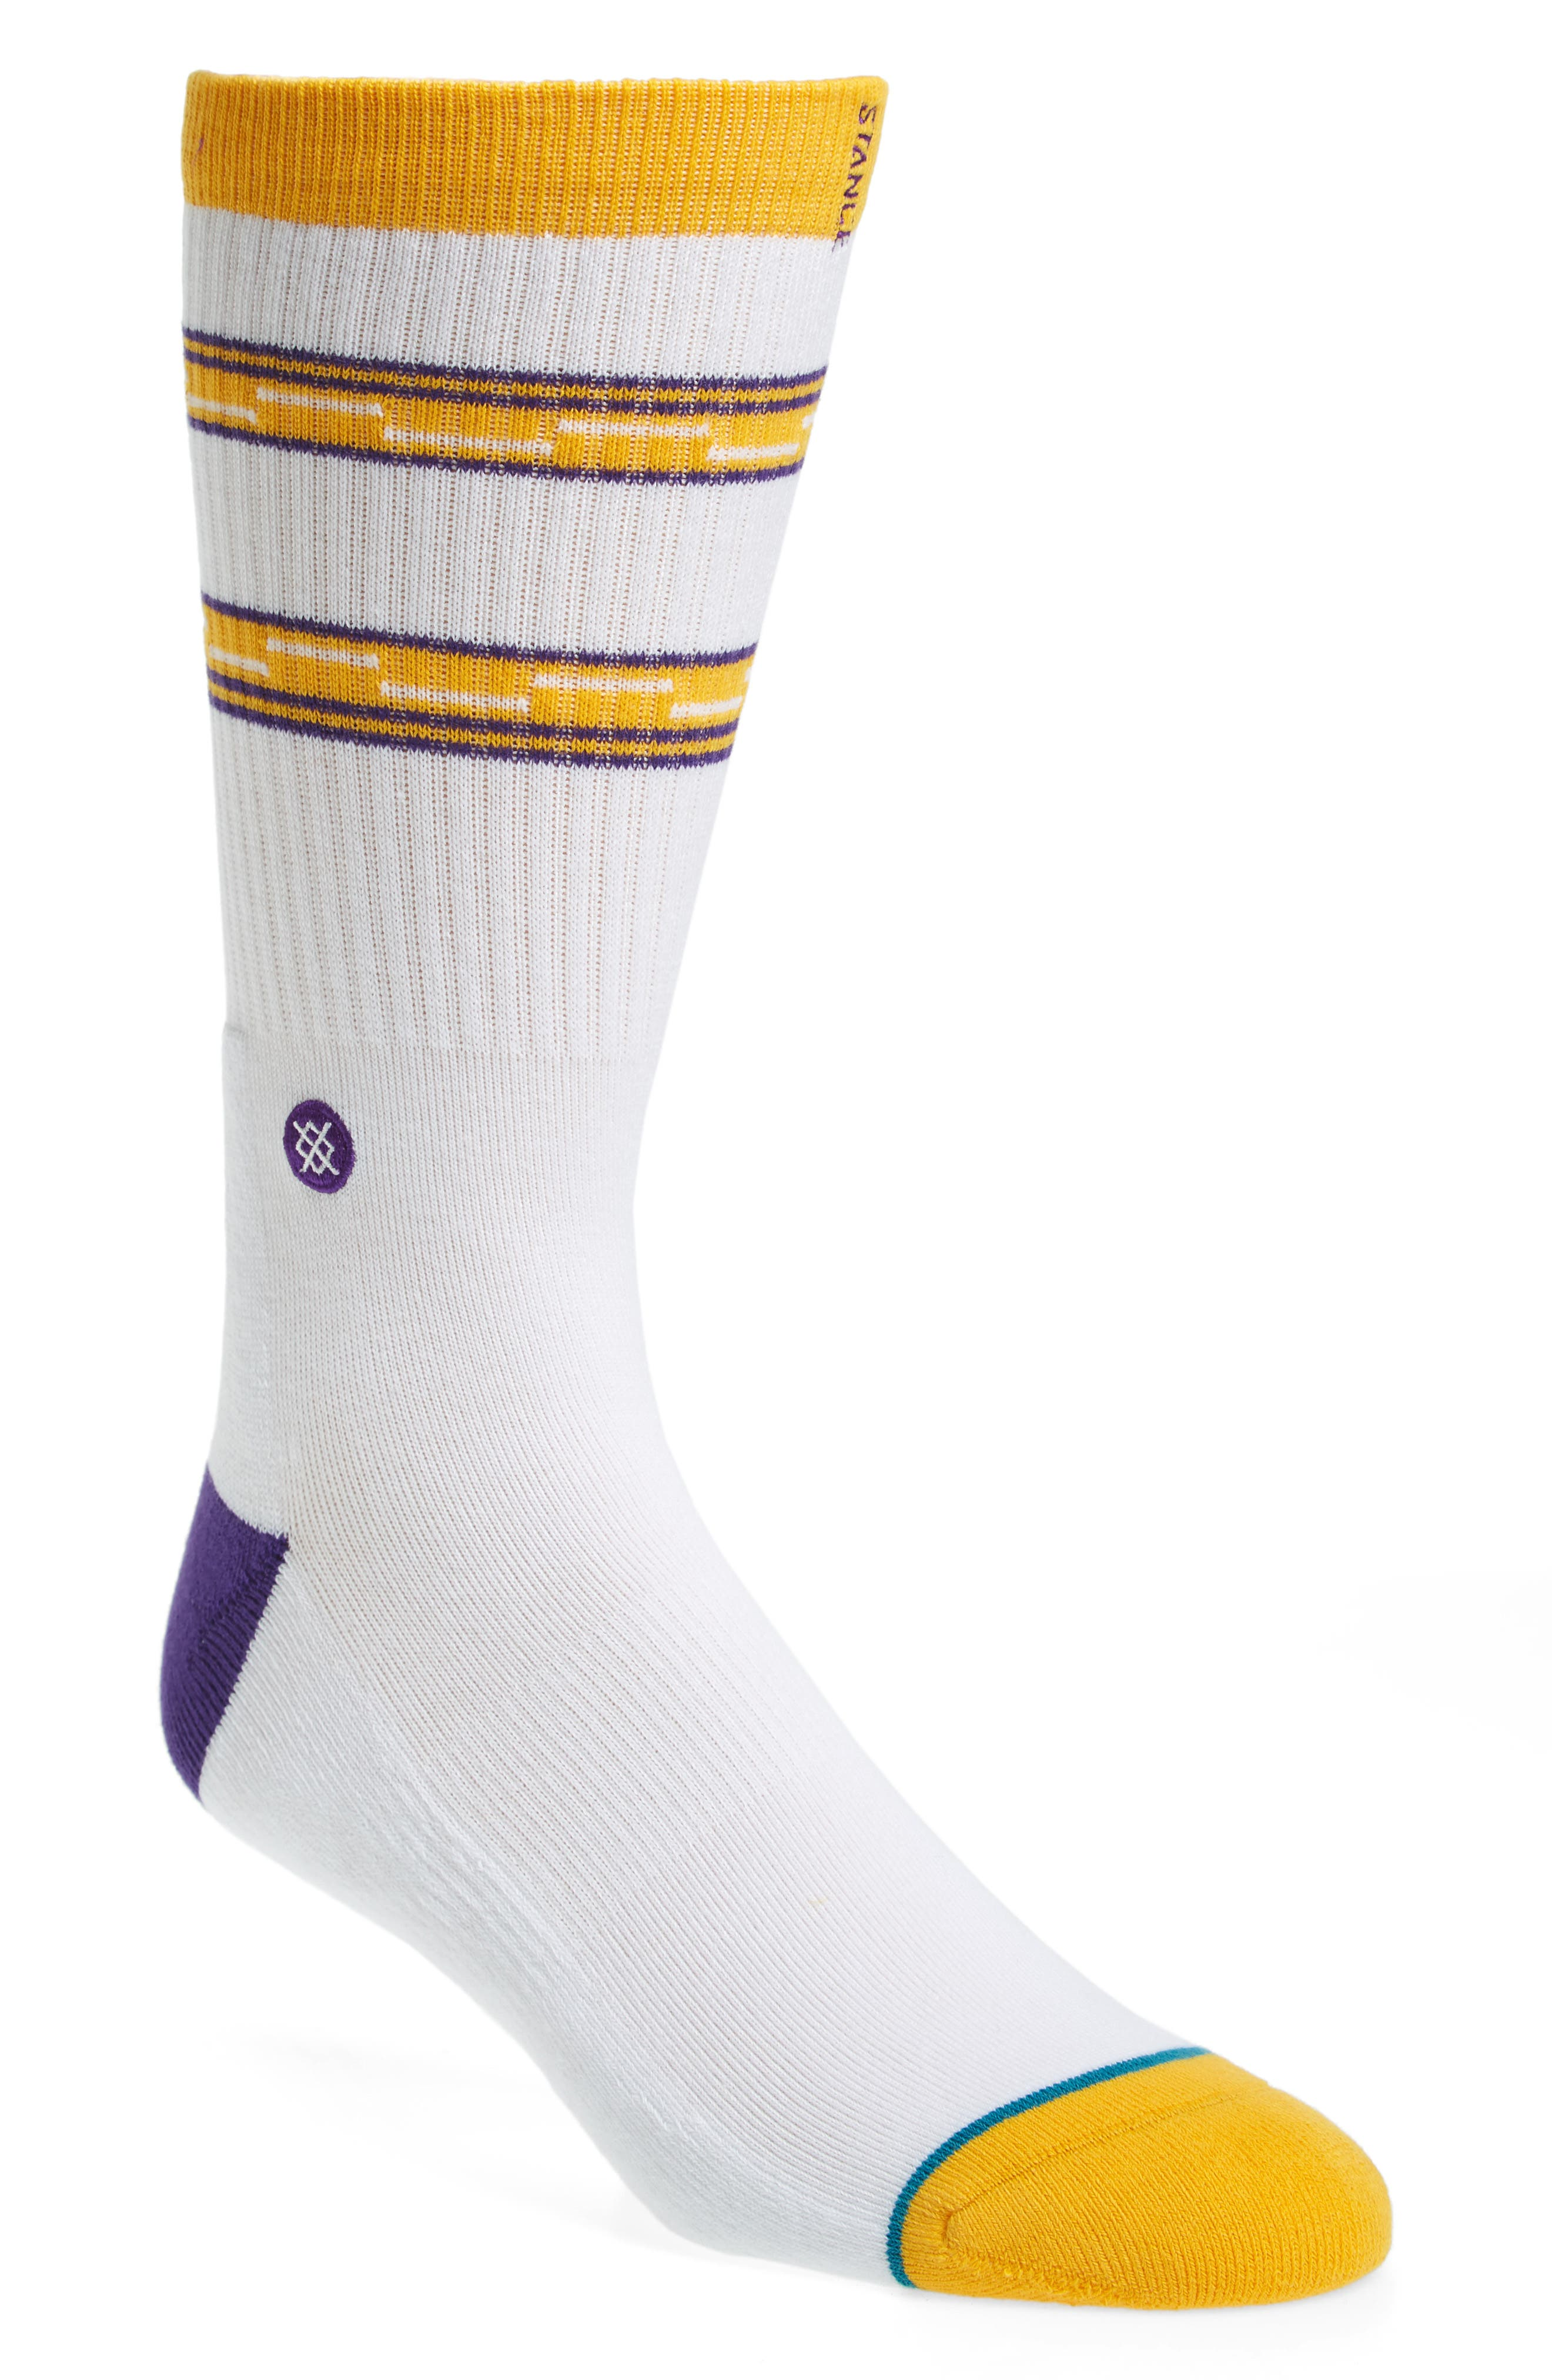 Los Angeles Lakers Arena Core Socks,                         Main,                         color, 100